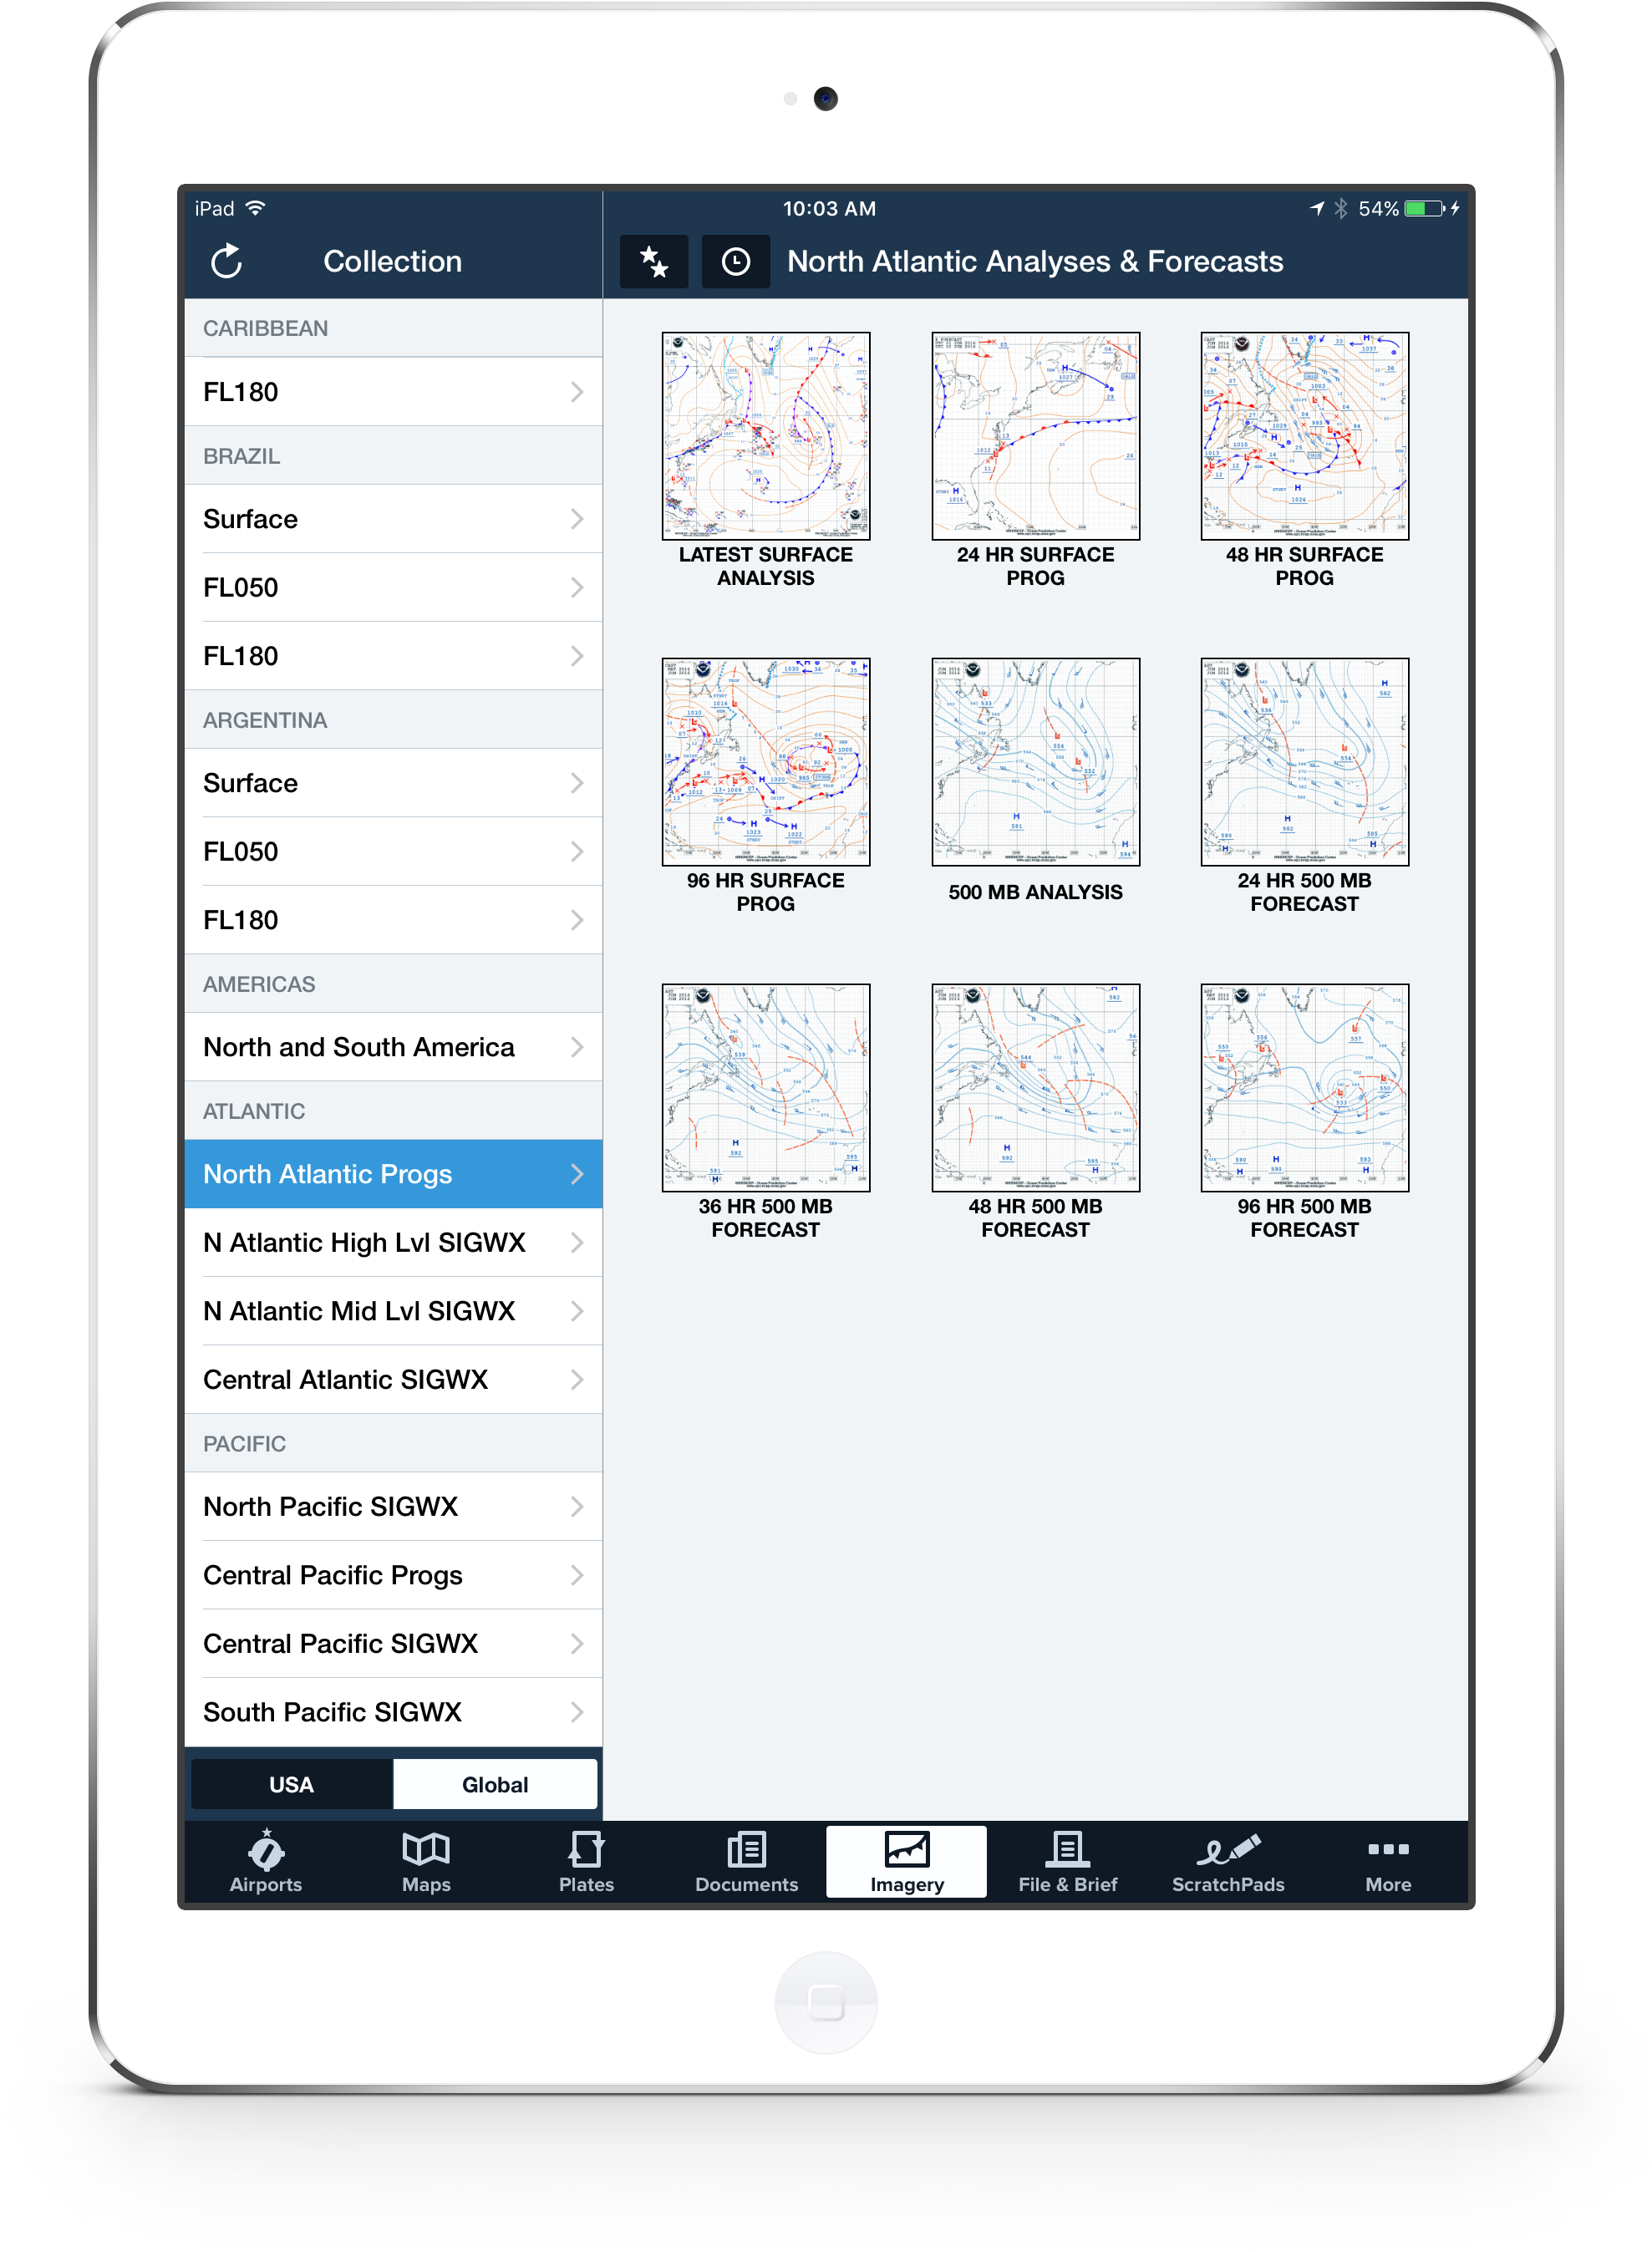 New International Forecast Weather Imagery Available in ForeFlight